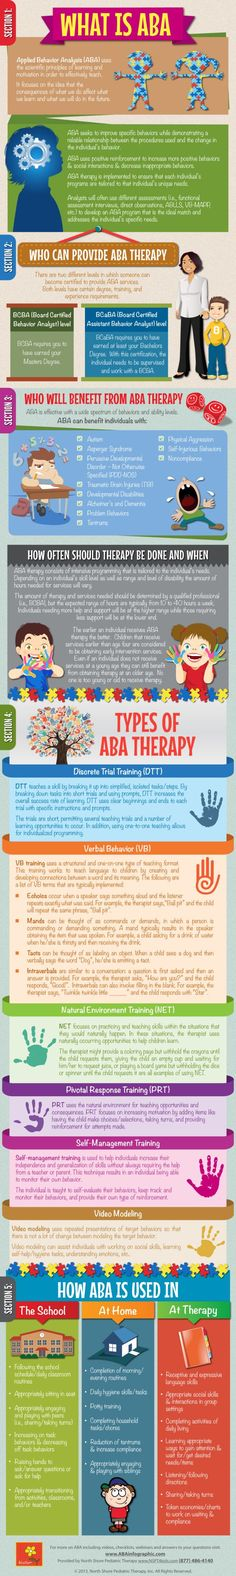 ABA Infographic - Breaks ABA down into easy-to-understand language for those who are interested or are just starting out.